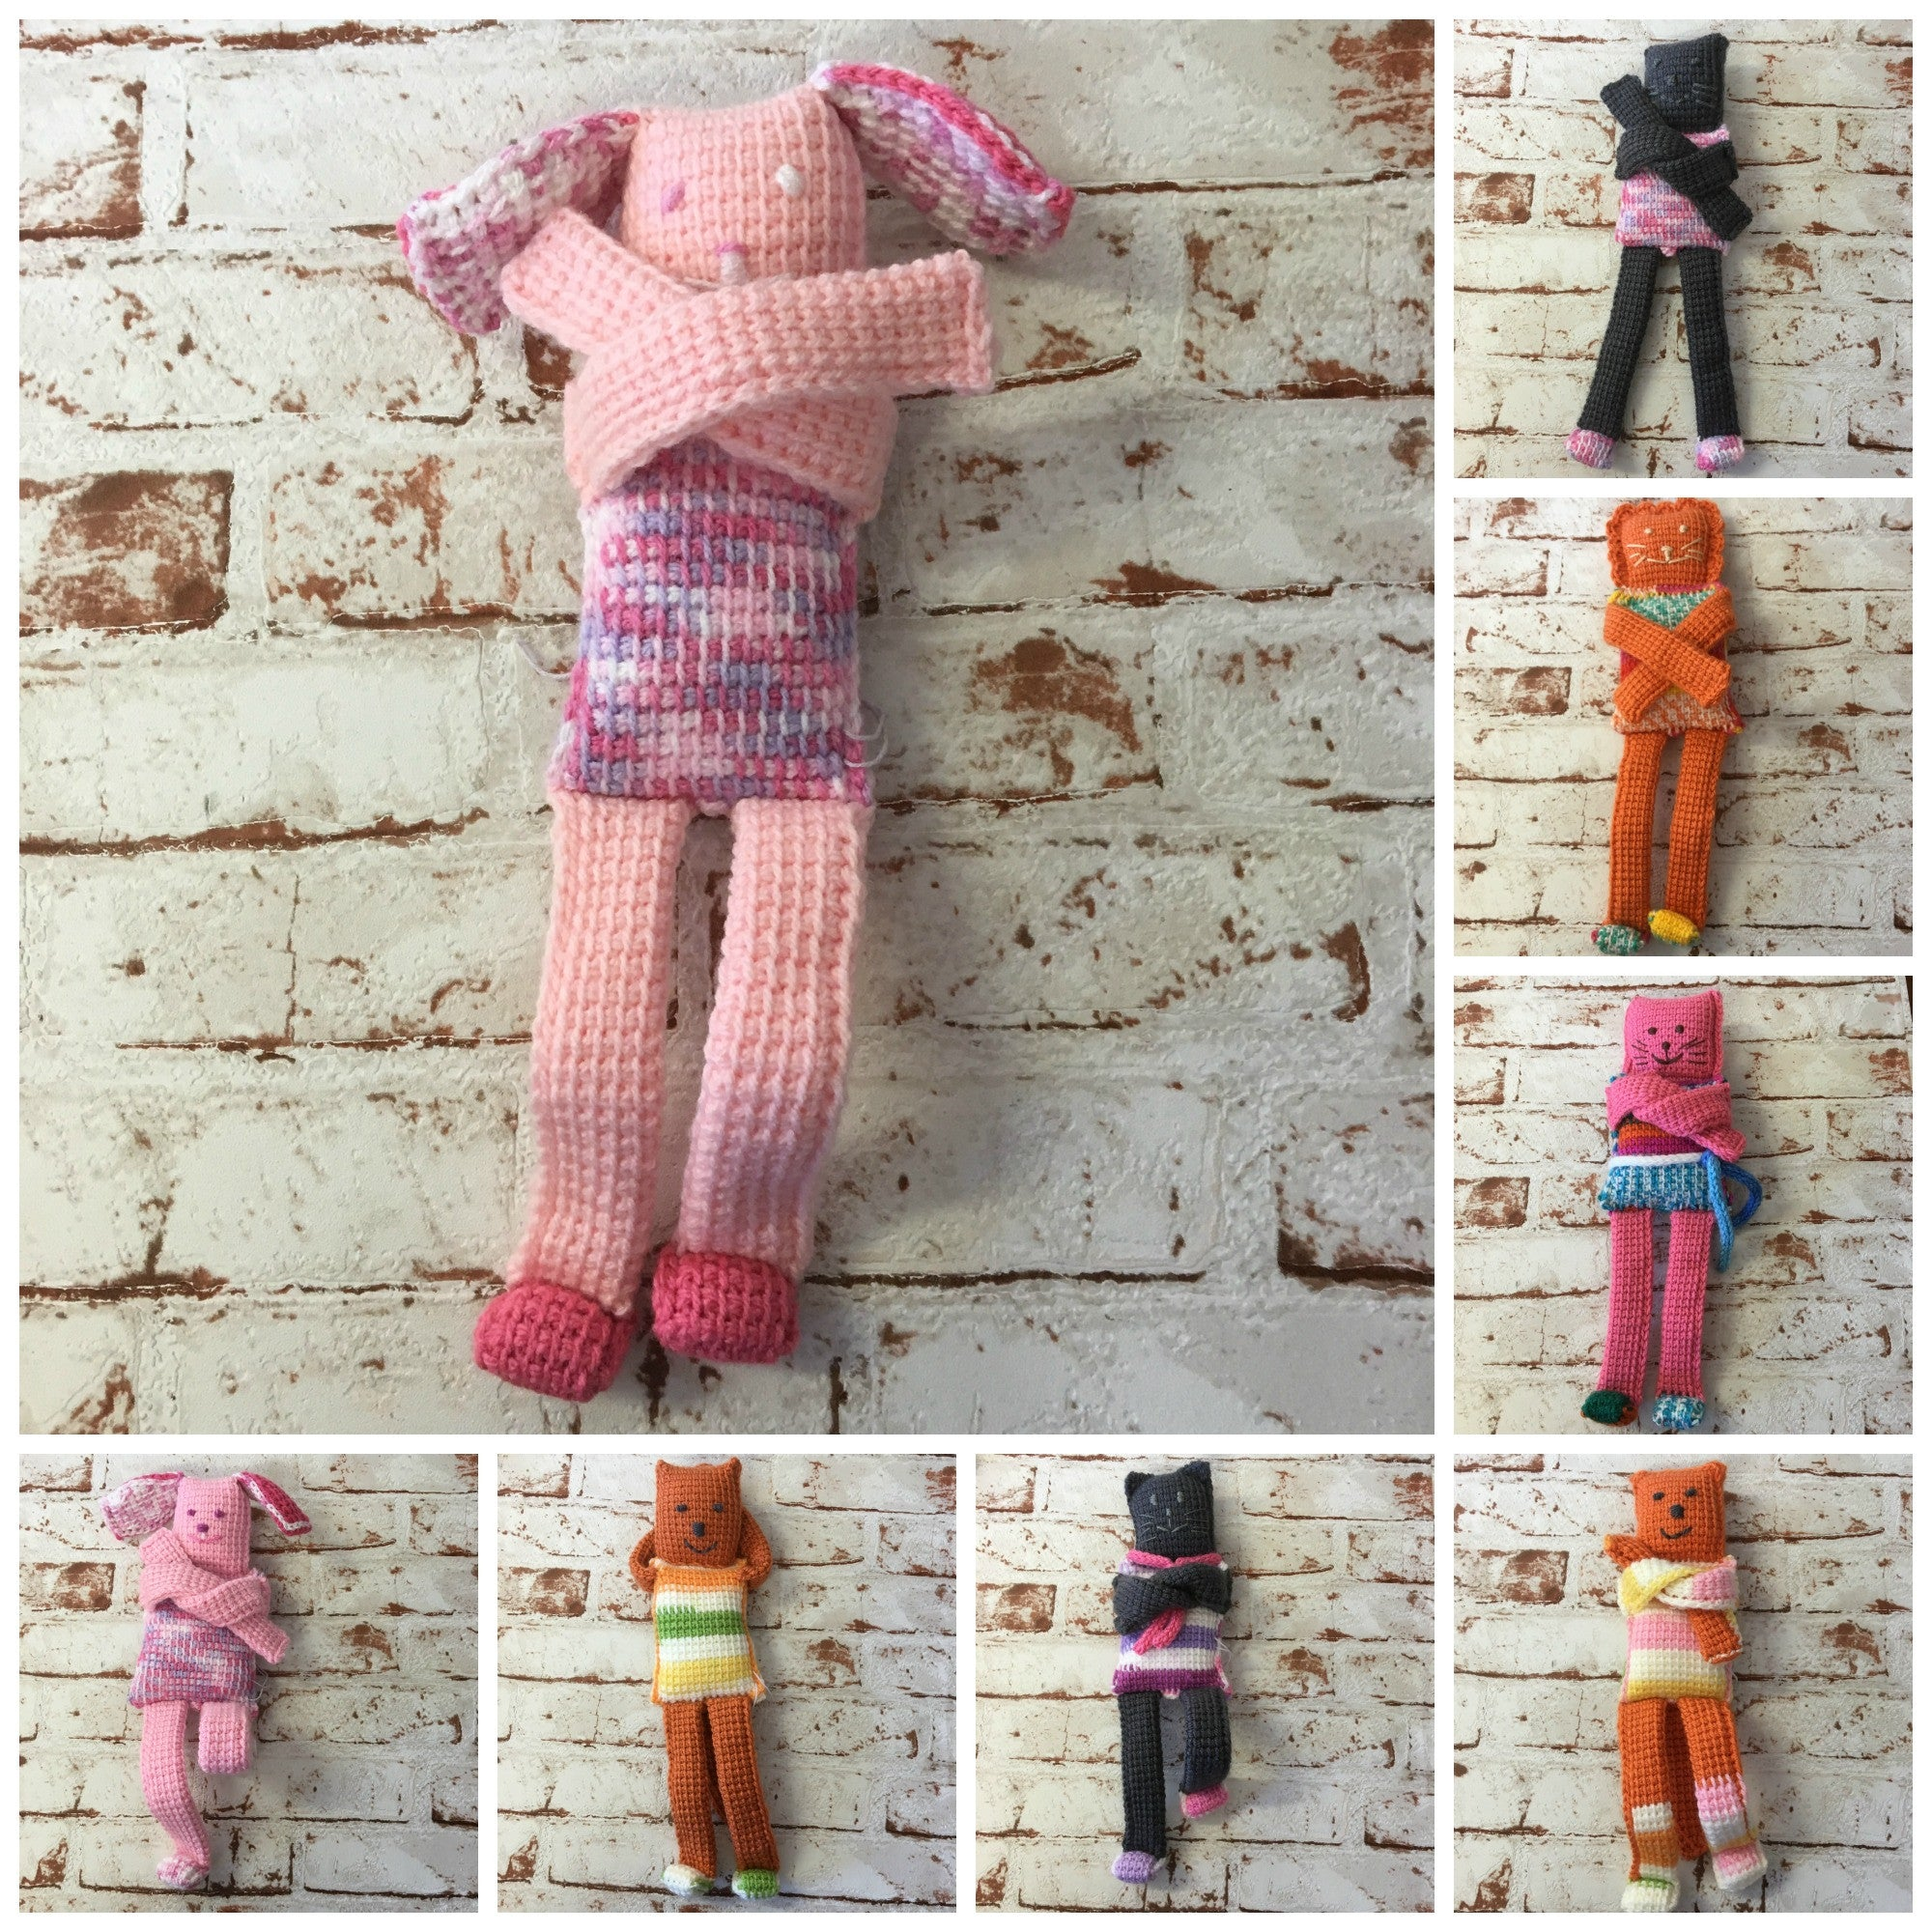 Crocheted Animals- Assorted designs